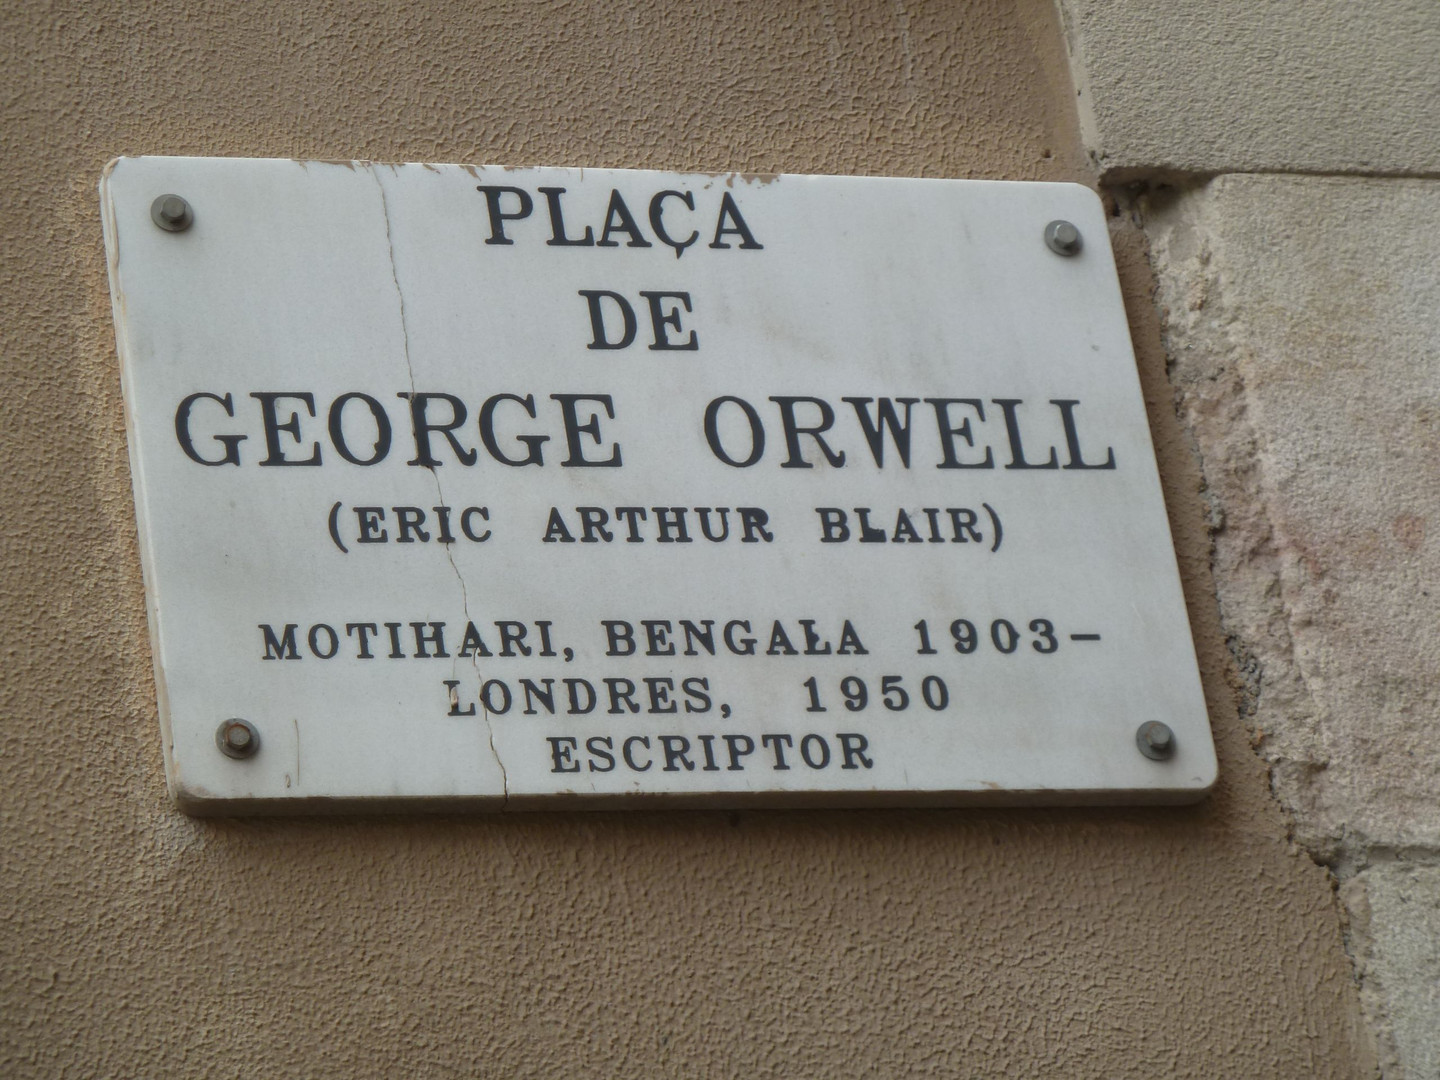 GEORGE-ORWELL-TOURS-IN-BARCELONA.jpg